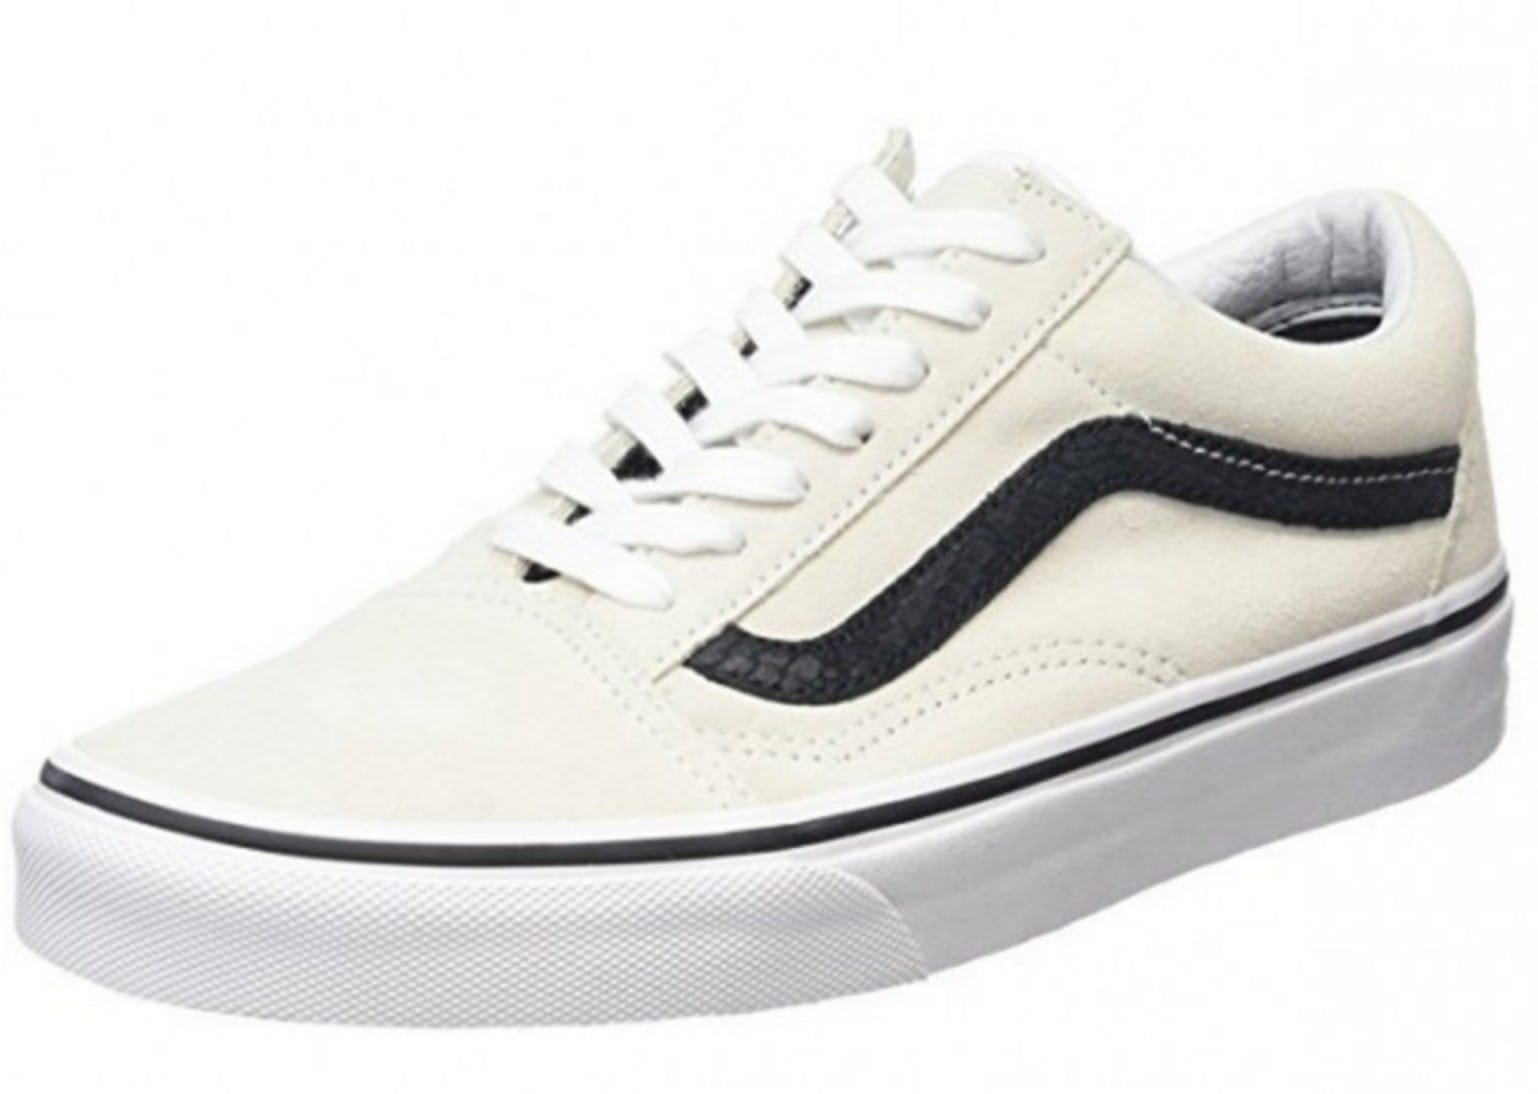 vans amarillas y negras old skool